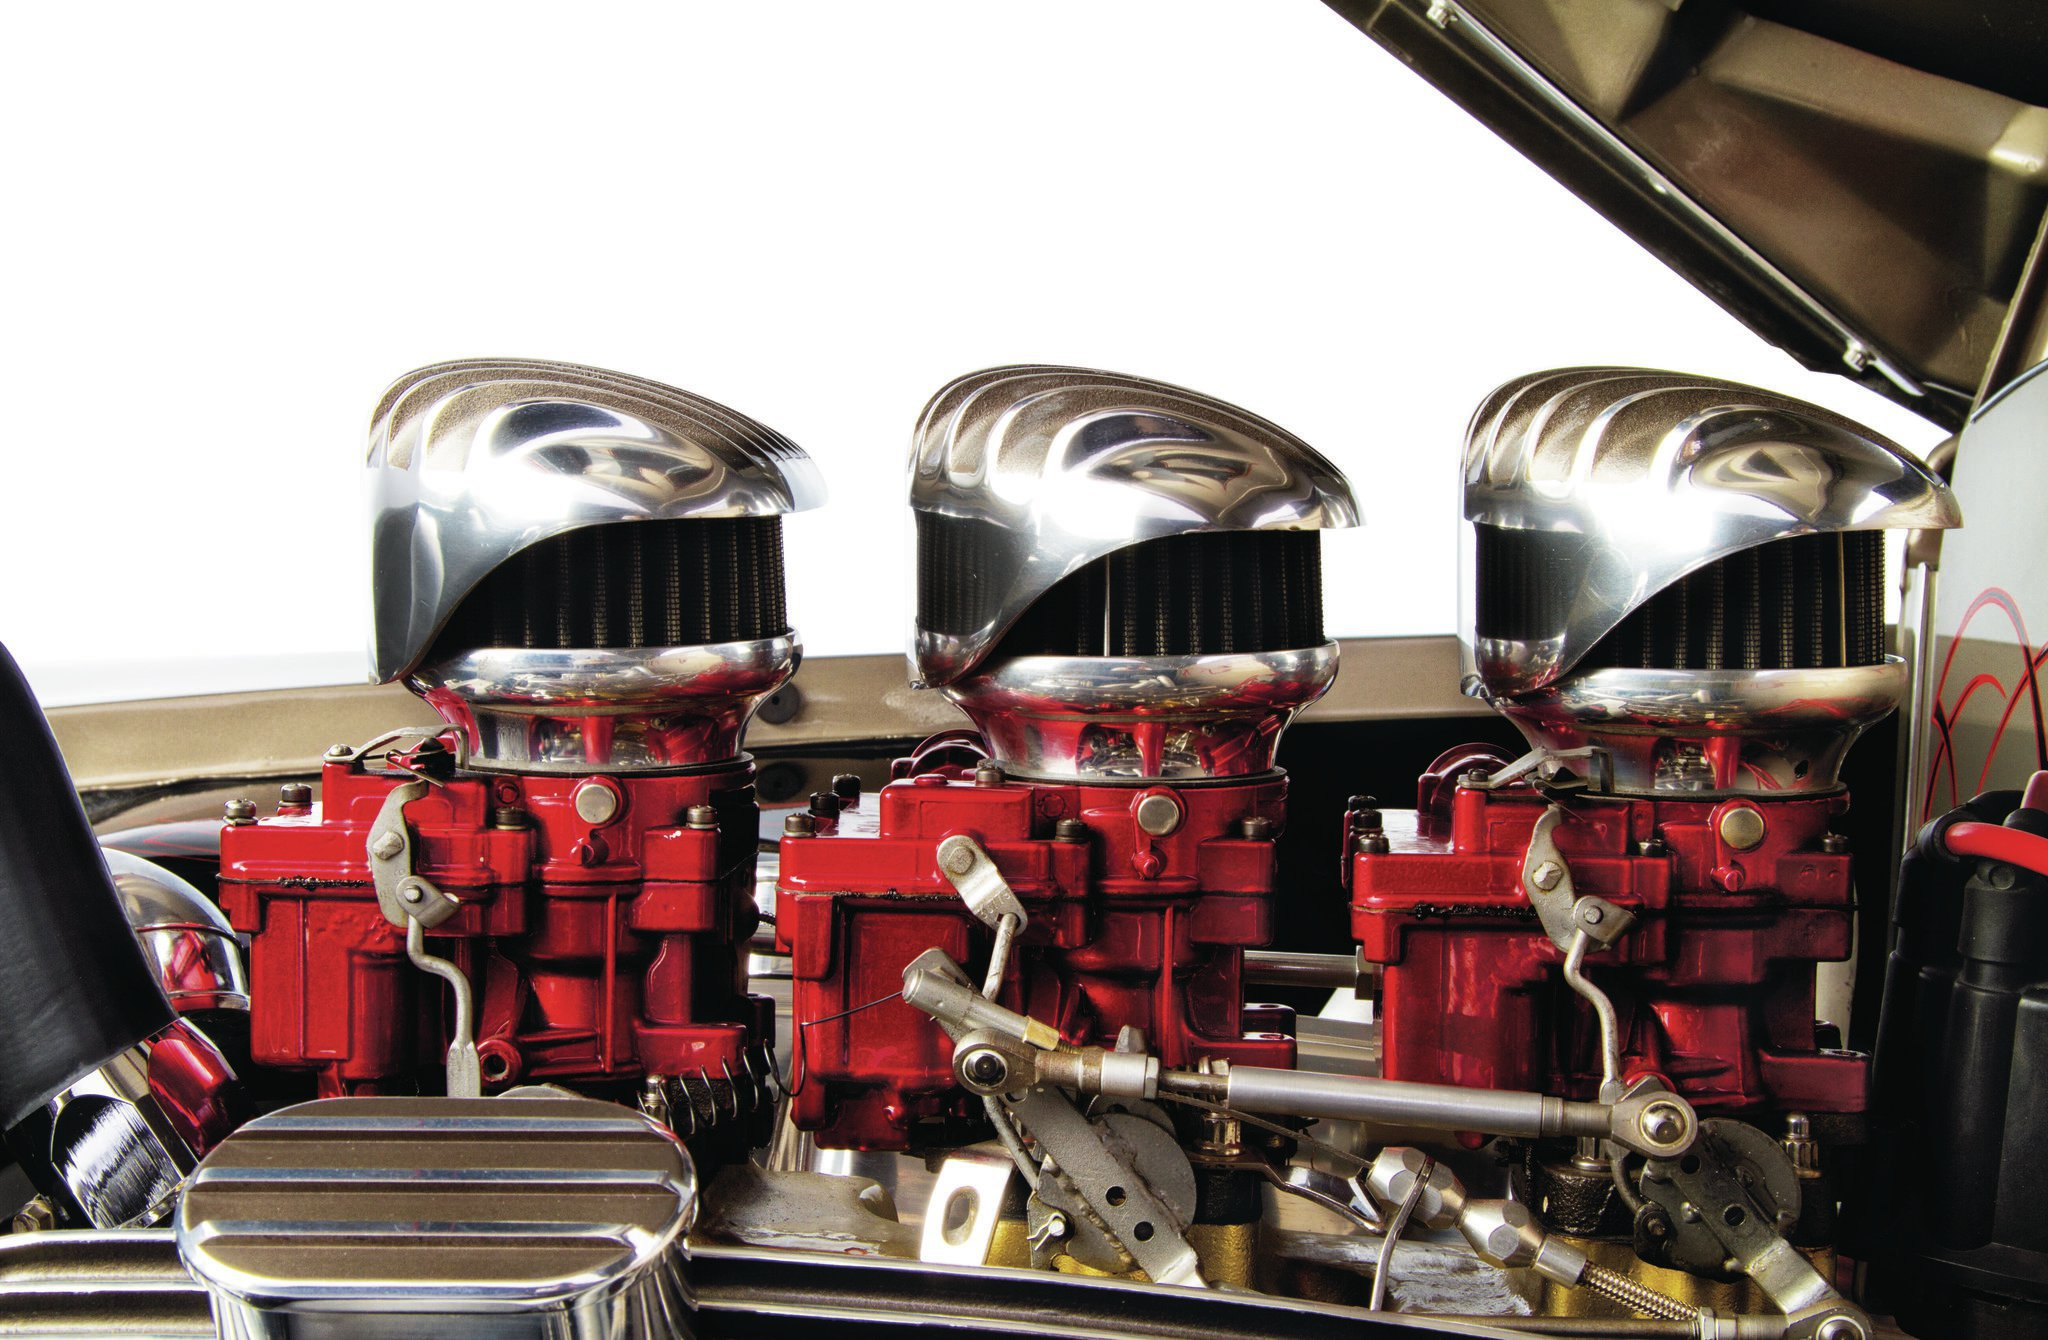 The 2-bbl Rochesters are powdercoated candy red to match the paint accents around the Cad and are complemented with retro-finned carb tops to match the finned valve covers.